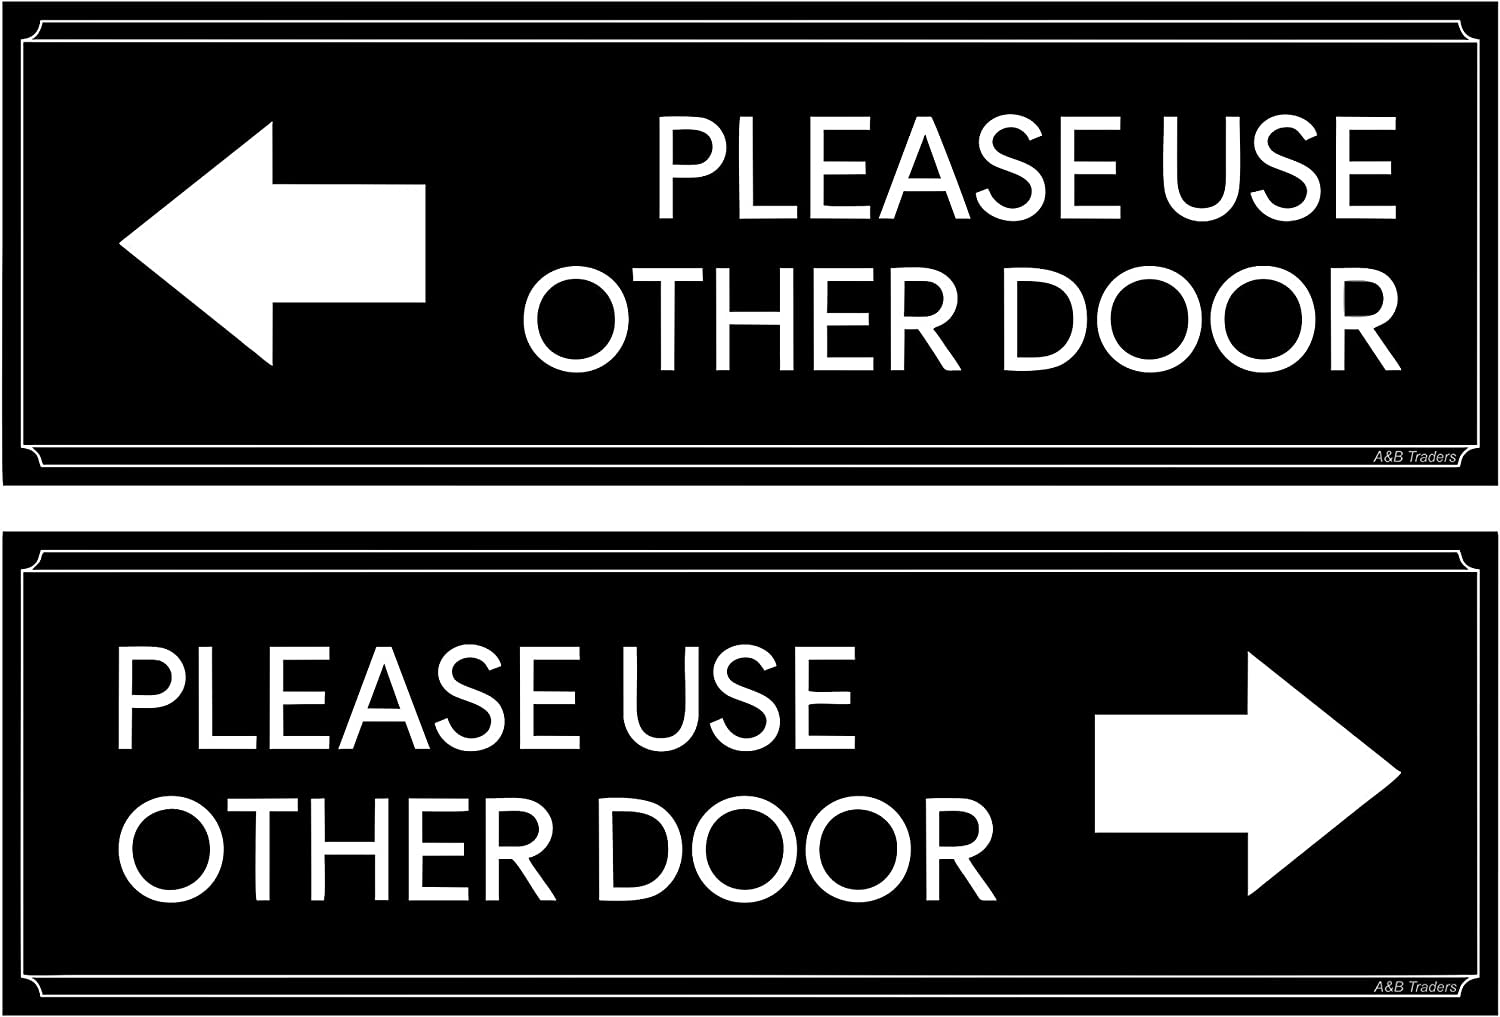 Please Use Other Door Sticker Vinyl Decal Stickers Office Sign 2 Pack Set - Self Adhesive Business Signs, Door Sign Peel & Stick exit Sign for Offices, Stores, Businesses and Shops. by A&B Traders